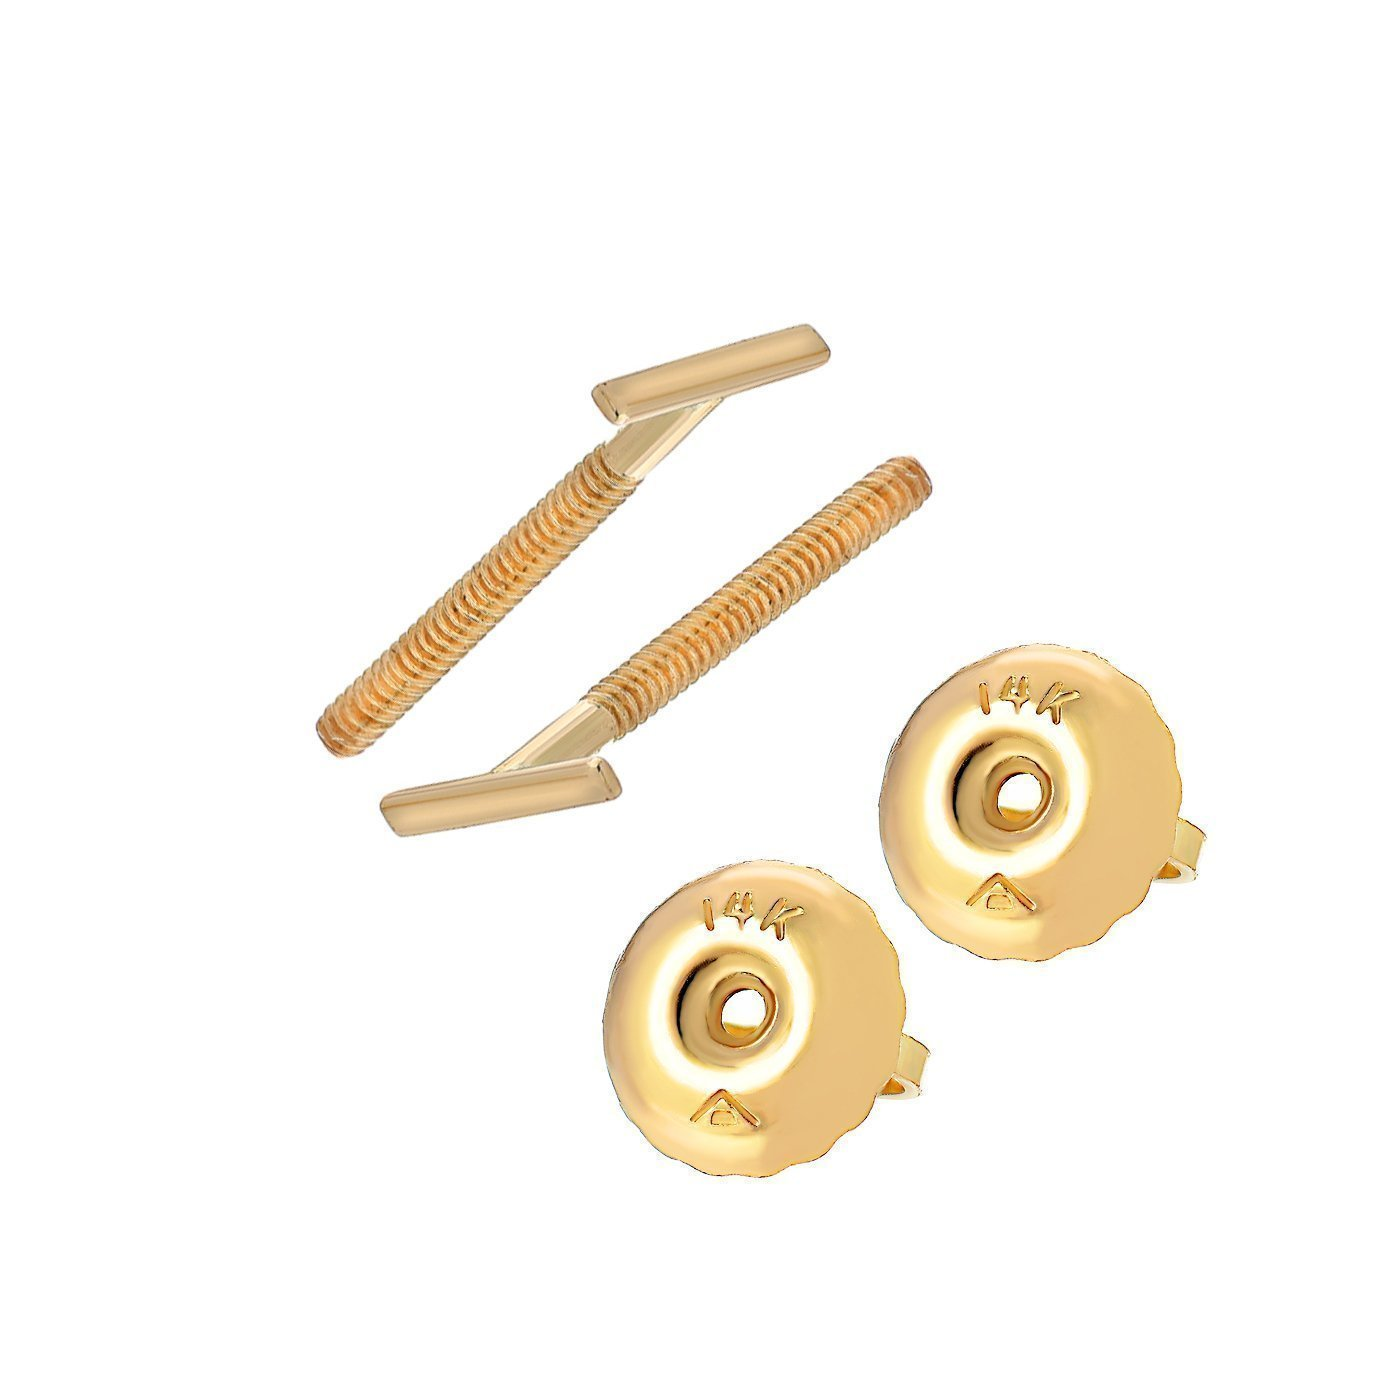 TousiAttar Line Stud Earrings Small Unique Jewelry for Womens Extremely Tiny Bar Studs Earring with Screw Back 14k Yellow Gold Hypoallergenic for Sensitive Ears